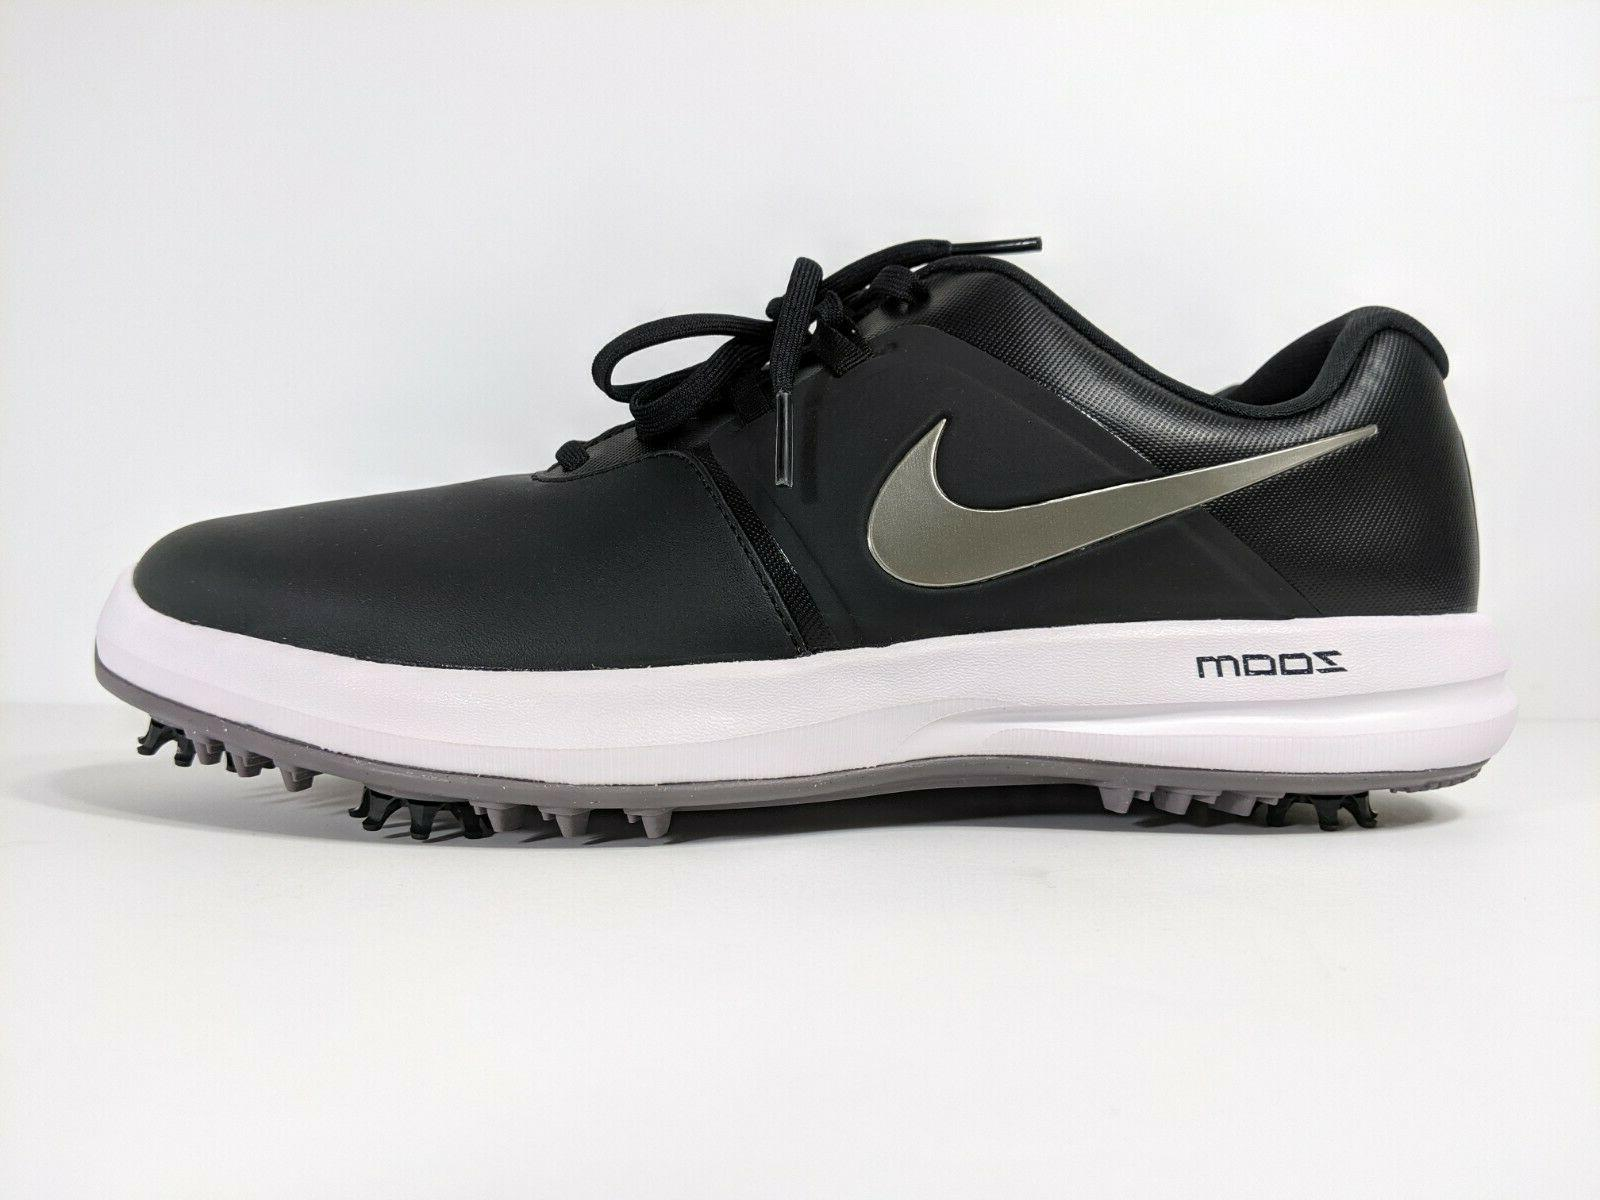 New Nike Victory Men's Shoes Black size 11